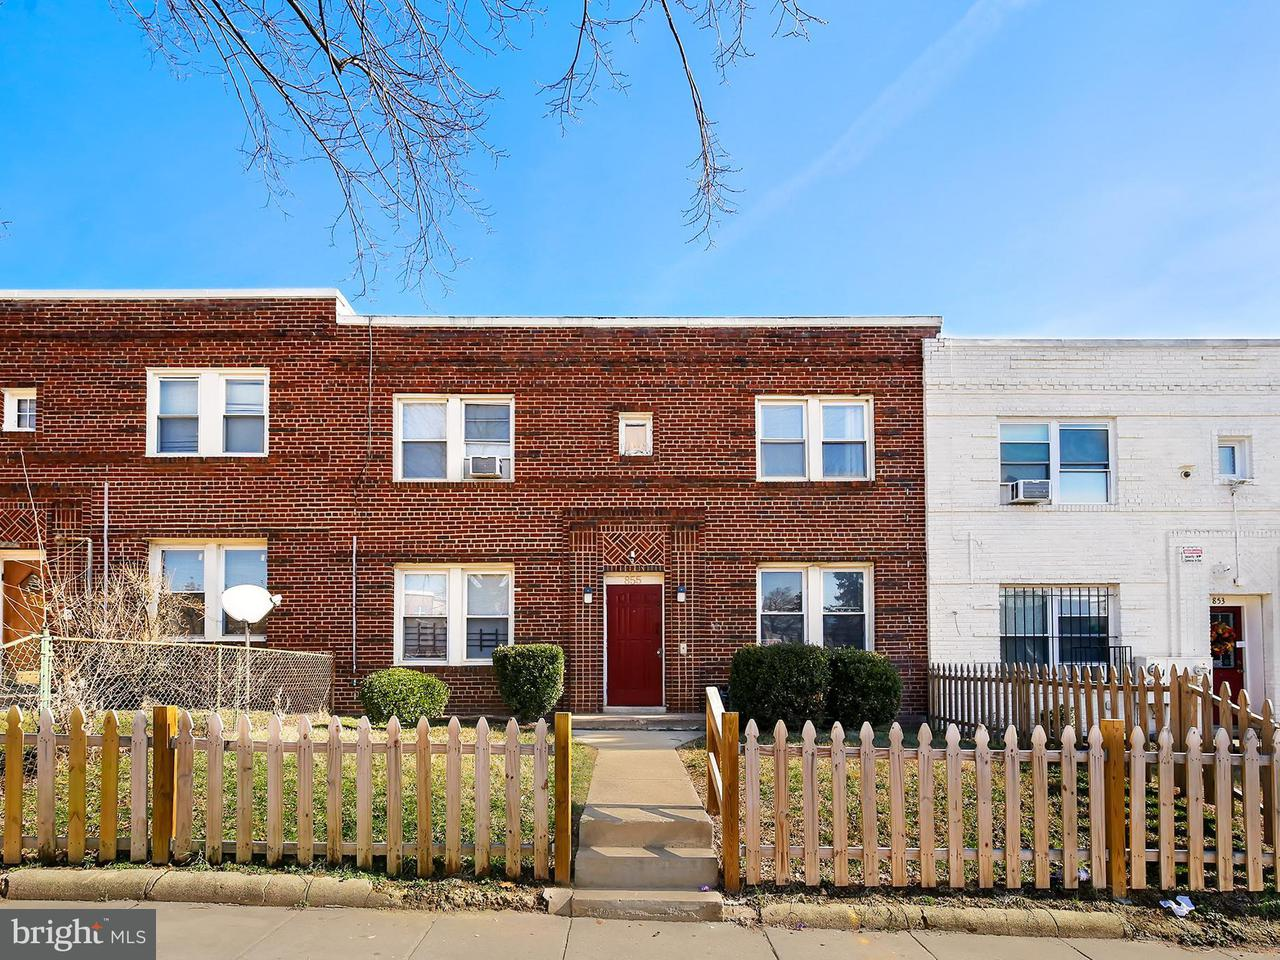 Multi-Family Home for Sale at 855 19th St Ne 855 19th St Ne Washington, District Of Columbia 20002 United States